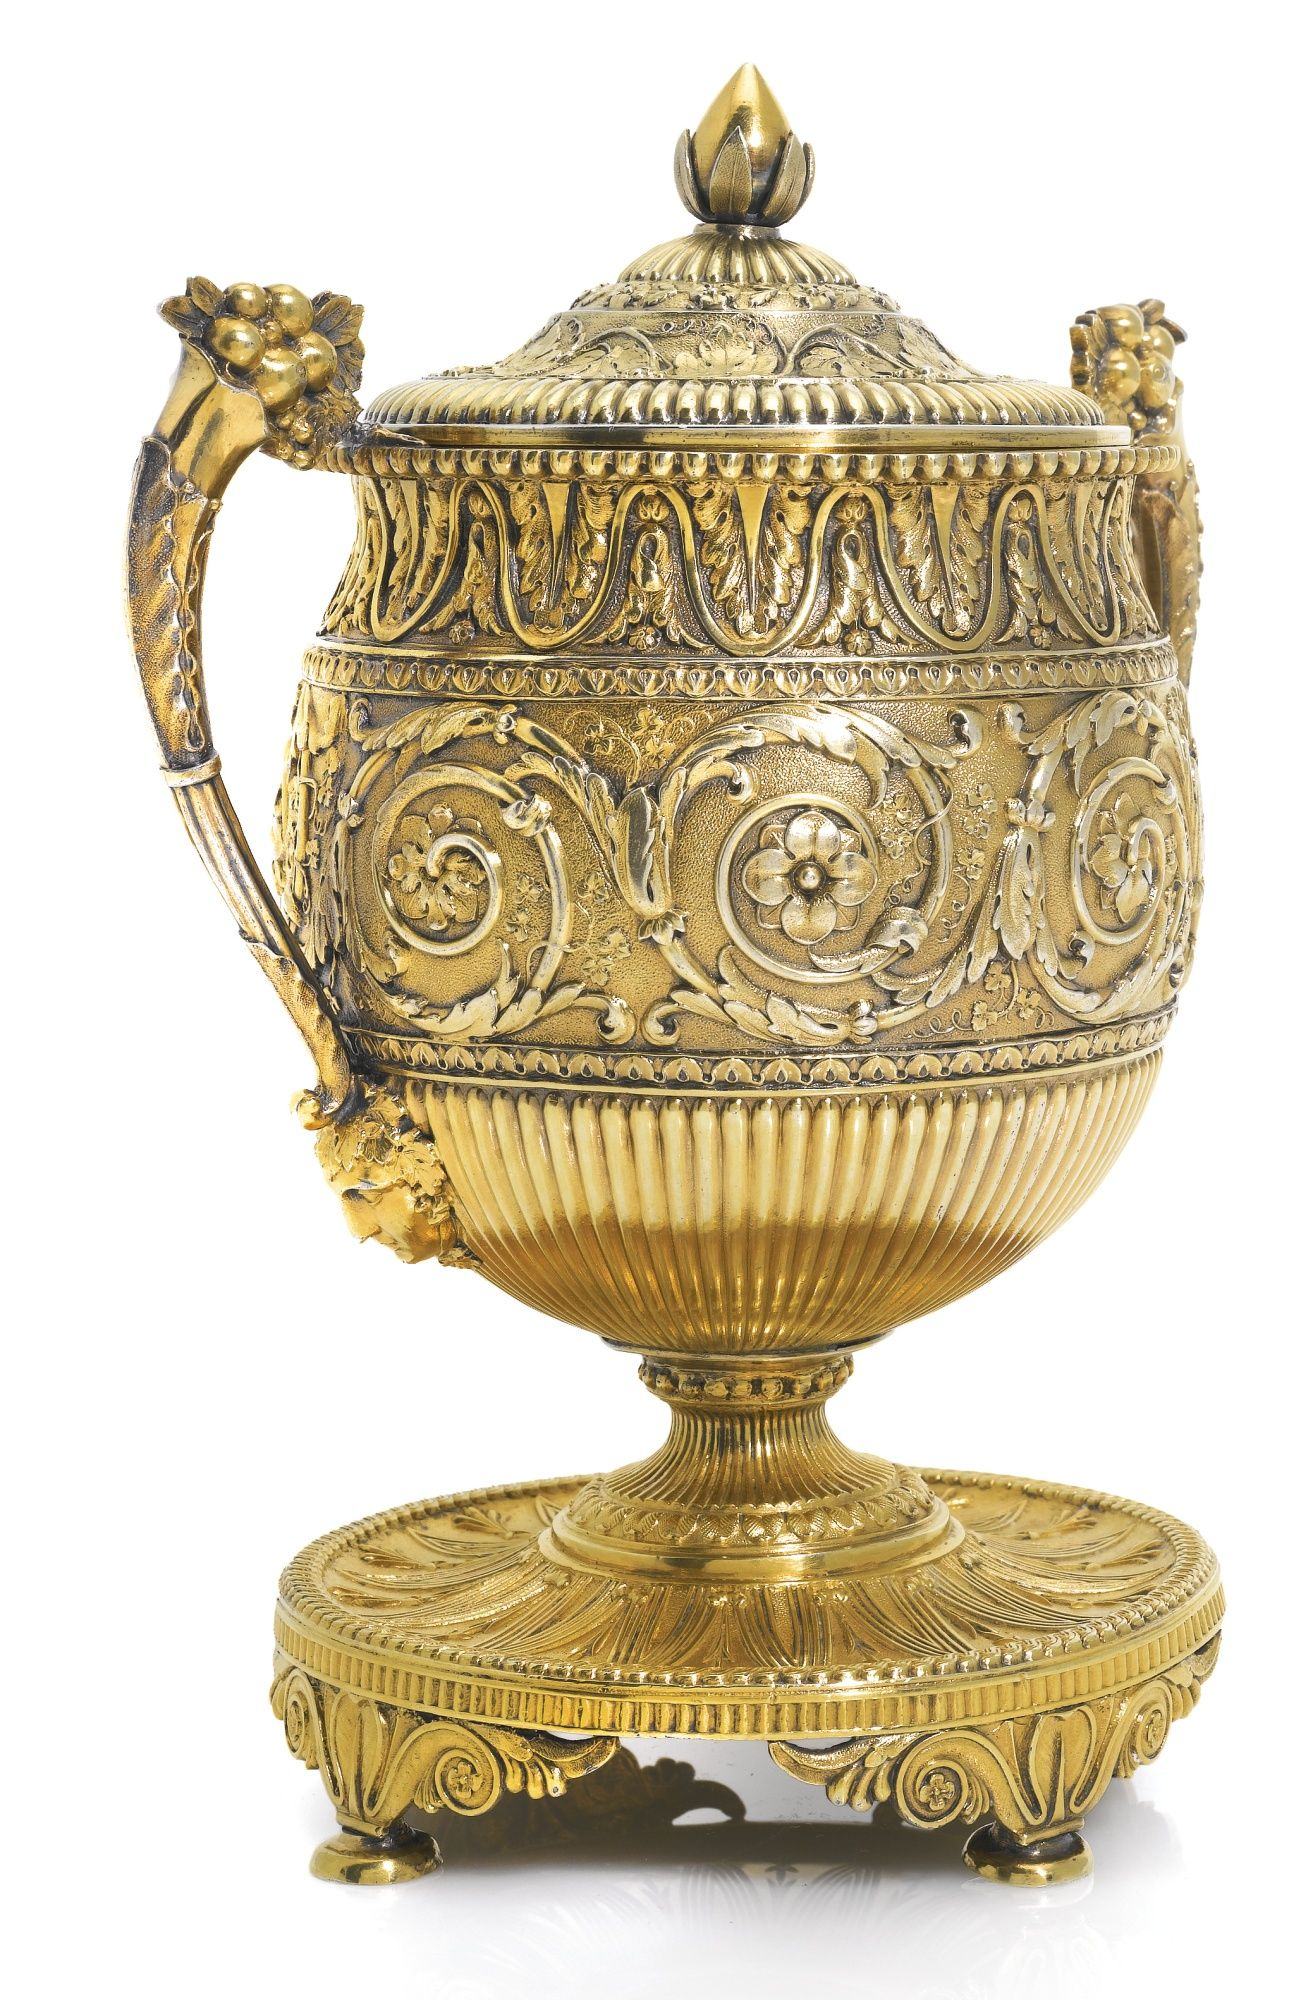 A George Iii Silver Gilt Sugar Vase And Cover Digby Scott Benjamin Smith London Circa 1805 Lot Sotheby S Digby Luxury Art Silver